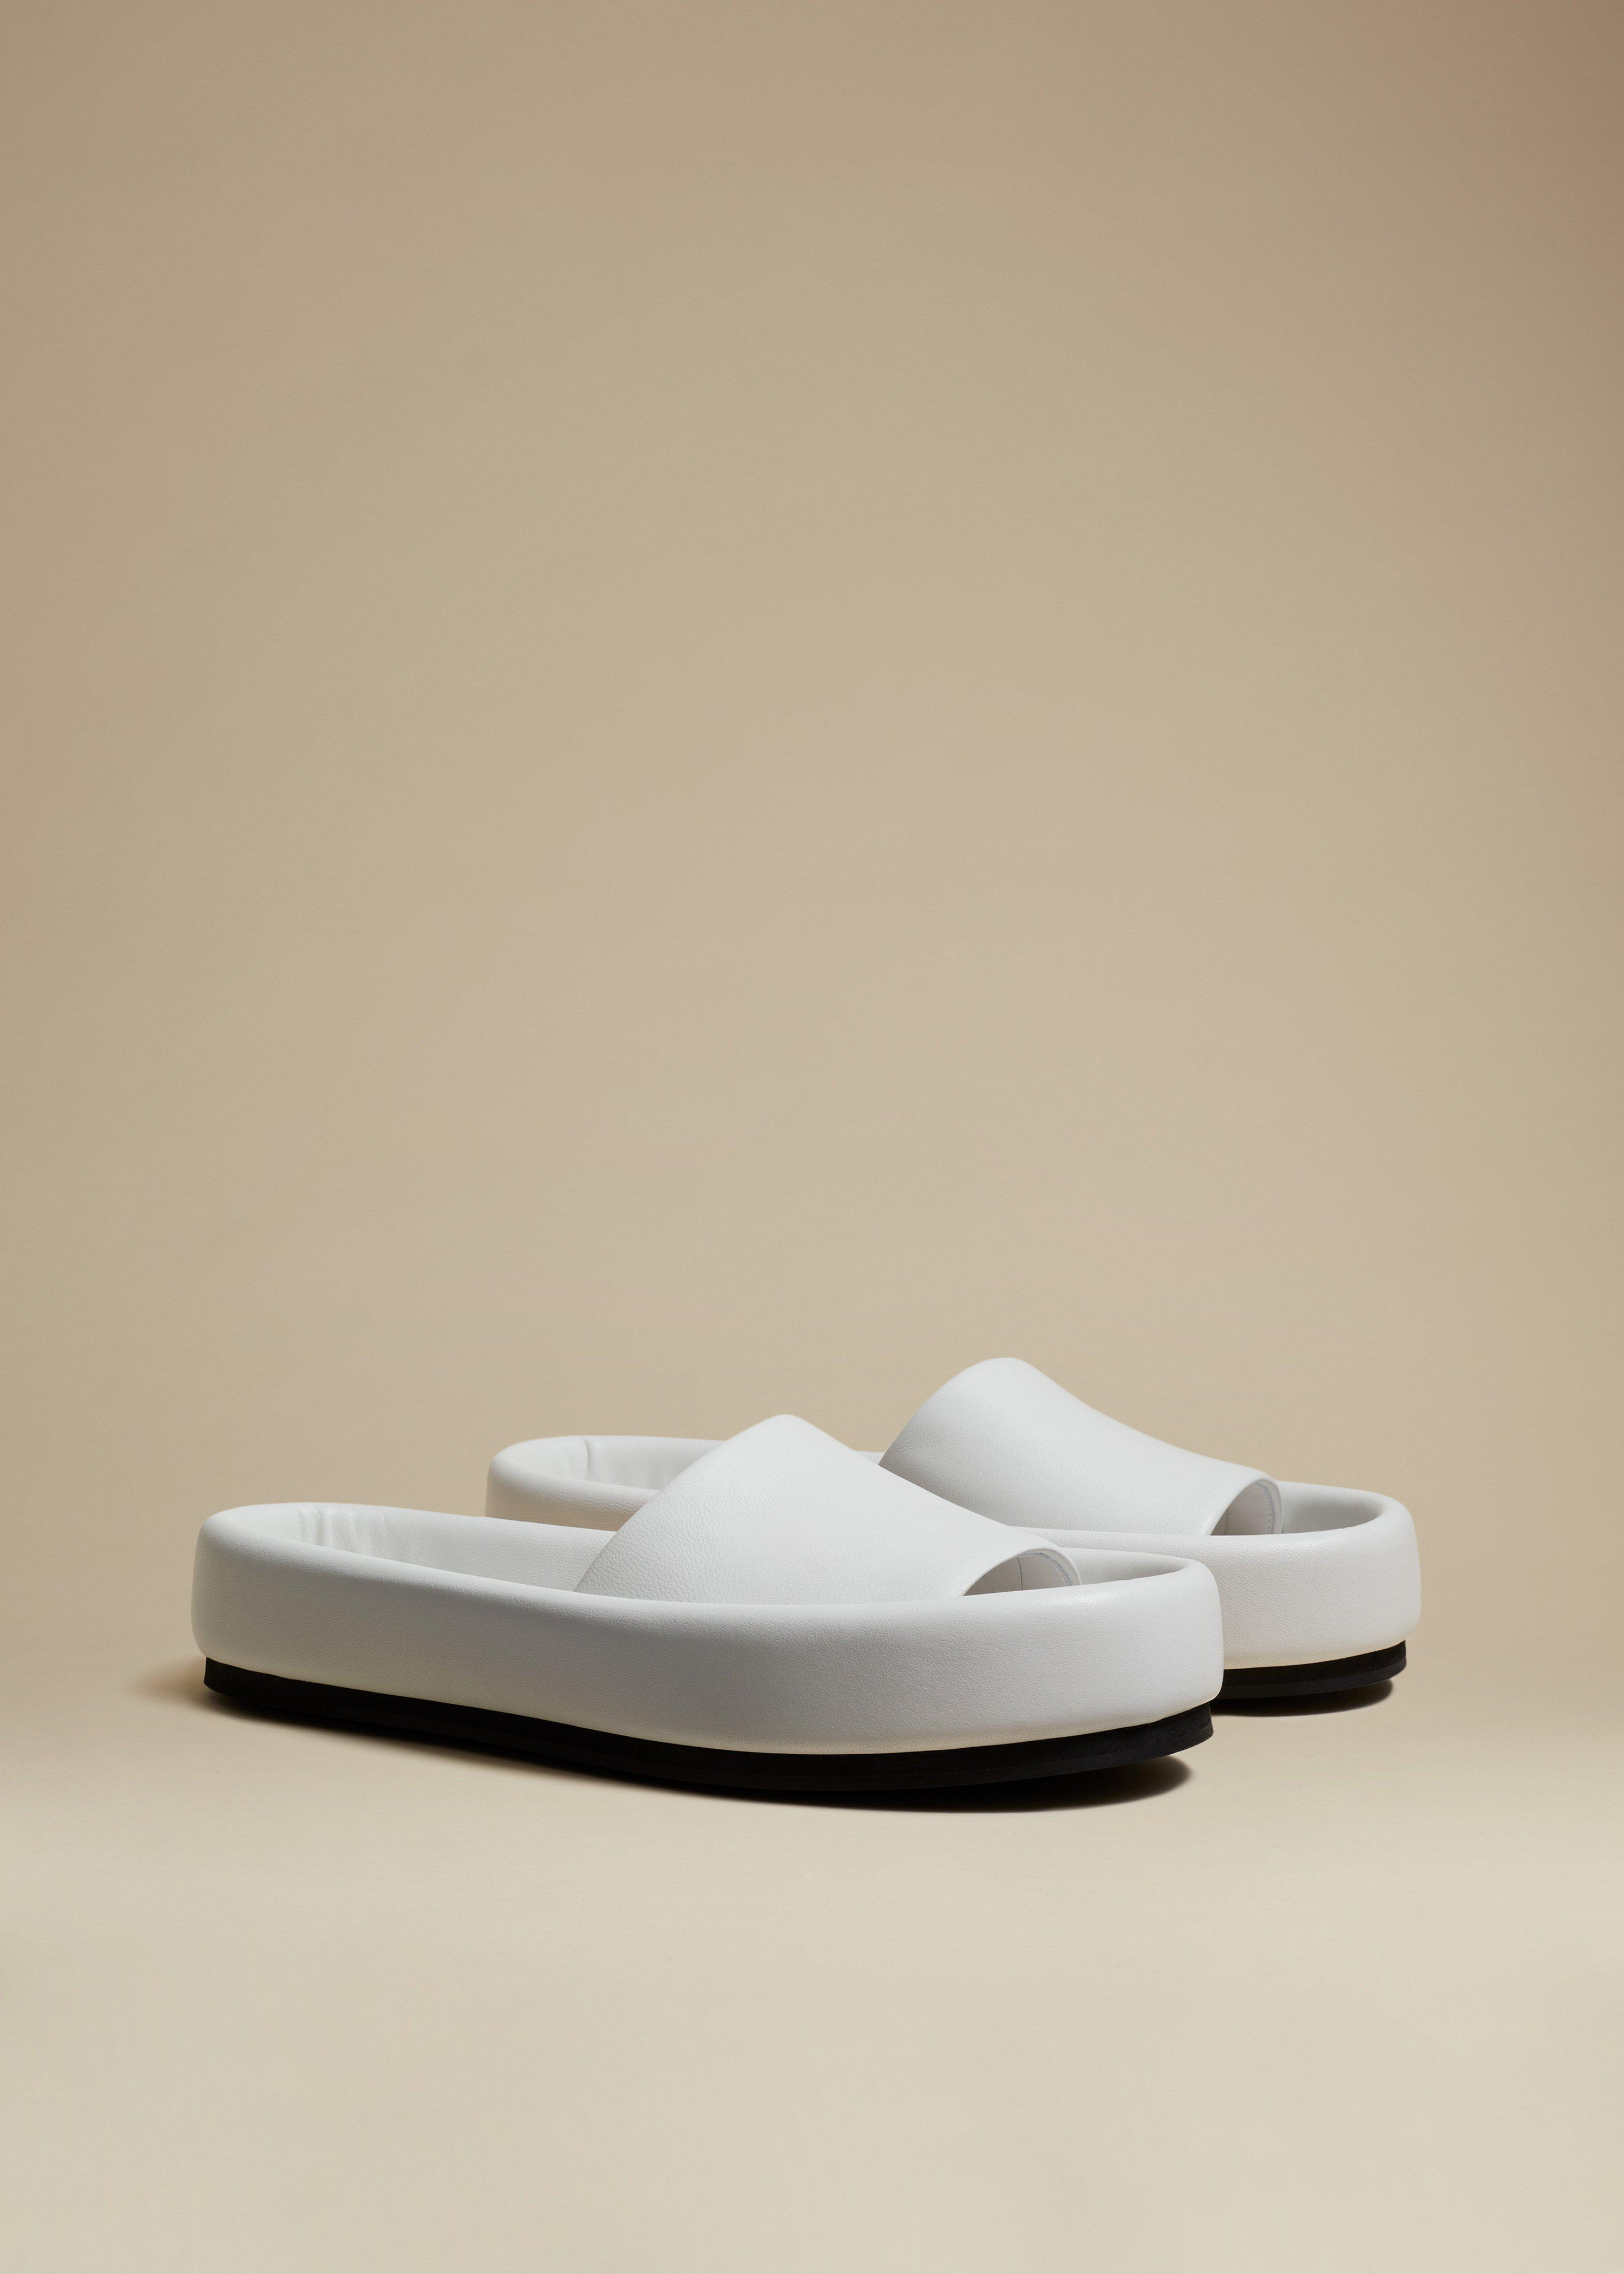 The Venice Sandal in White Leather 1